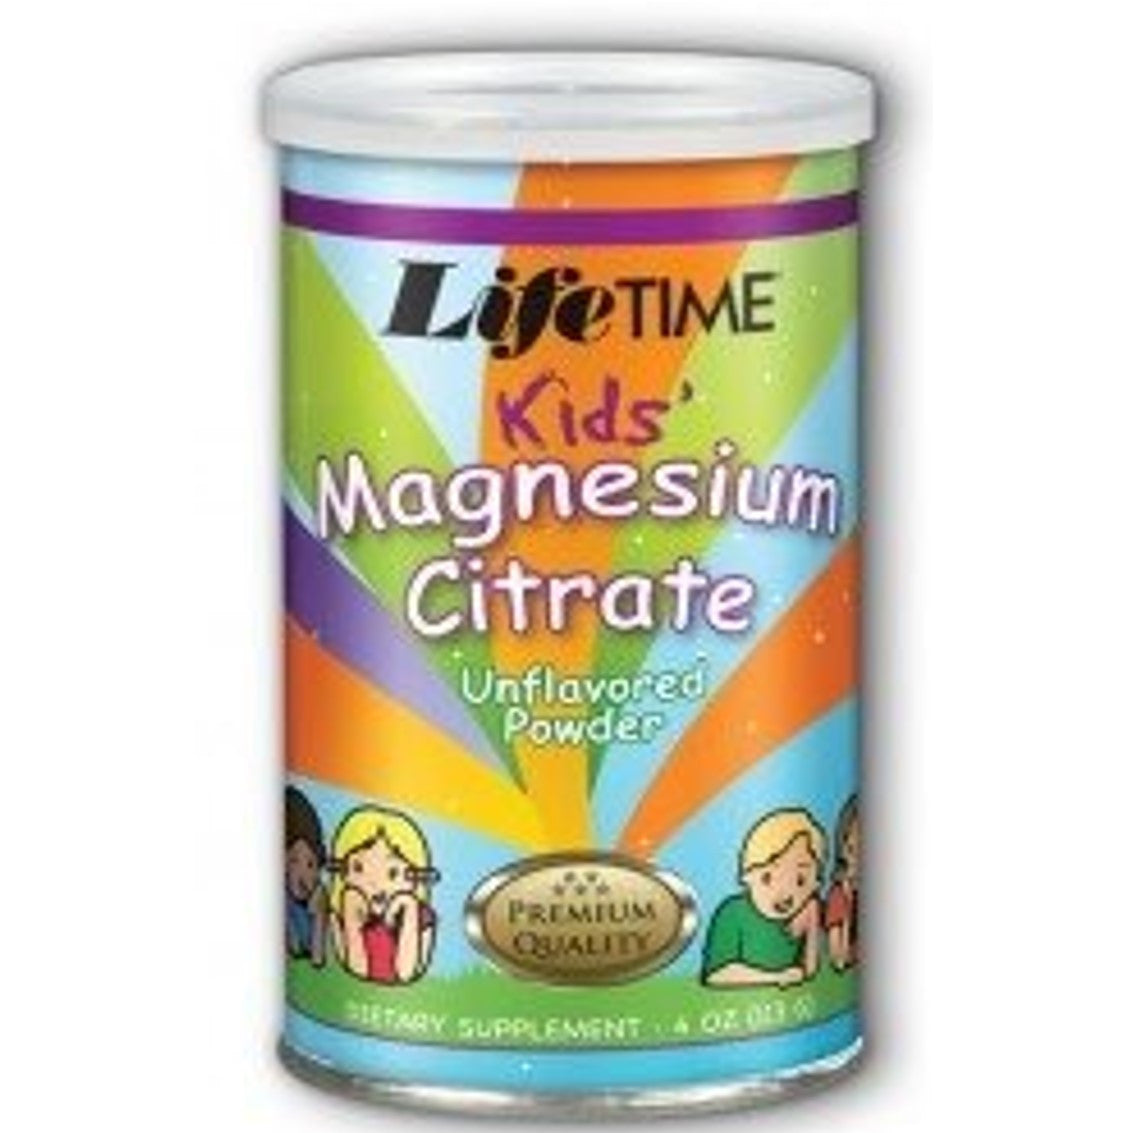 Lifetime Kids' Magnesium Citrate - Unflavoured powder, 113g.